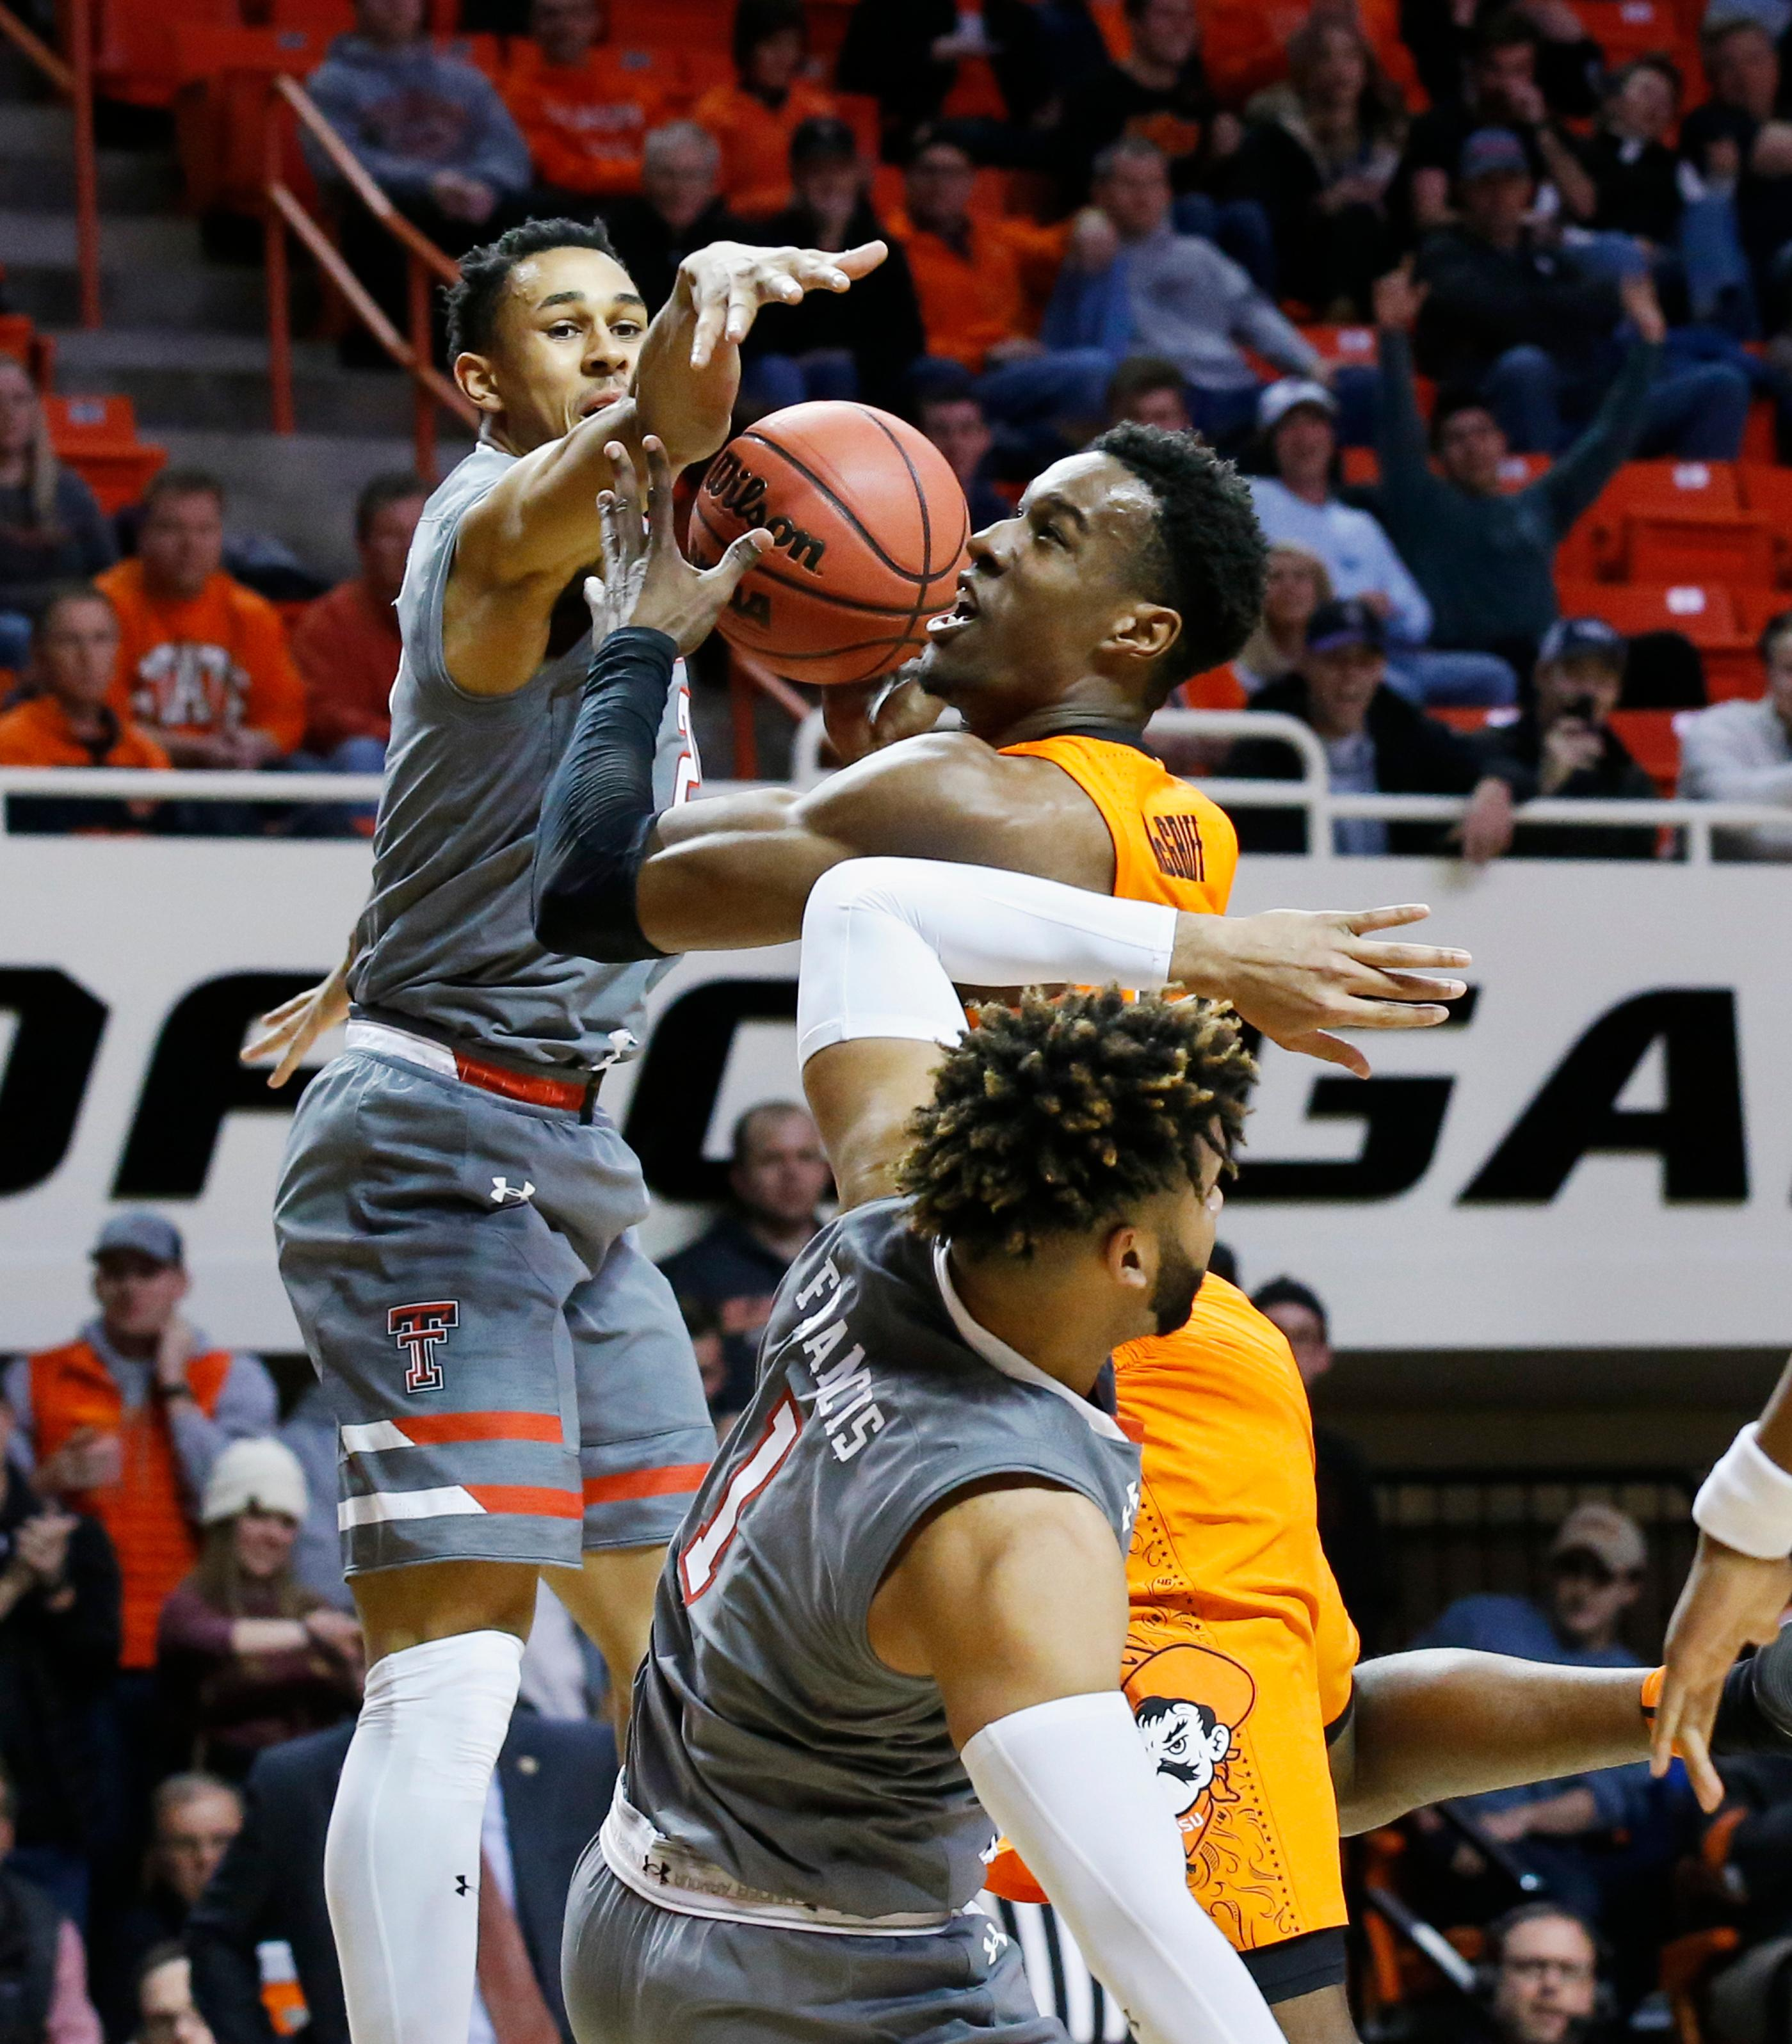 Oklahoma State forward Cameron McGriff, center, drives to the basket between Texas Tech guard Zhaire Smith, left, and guard Brandone Francis (1) during the first half of an NCAA college basketball game in Stillwater, Okla., Wednesday, Feb. 21, 2018. (AP Photo/Sue Ogrocki)